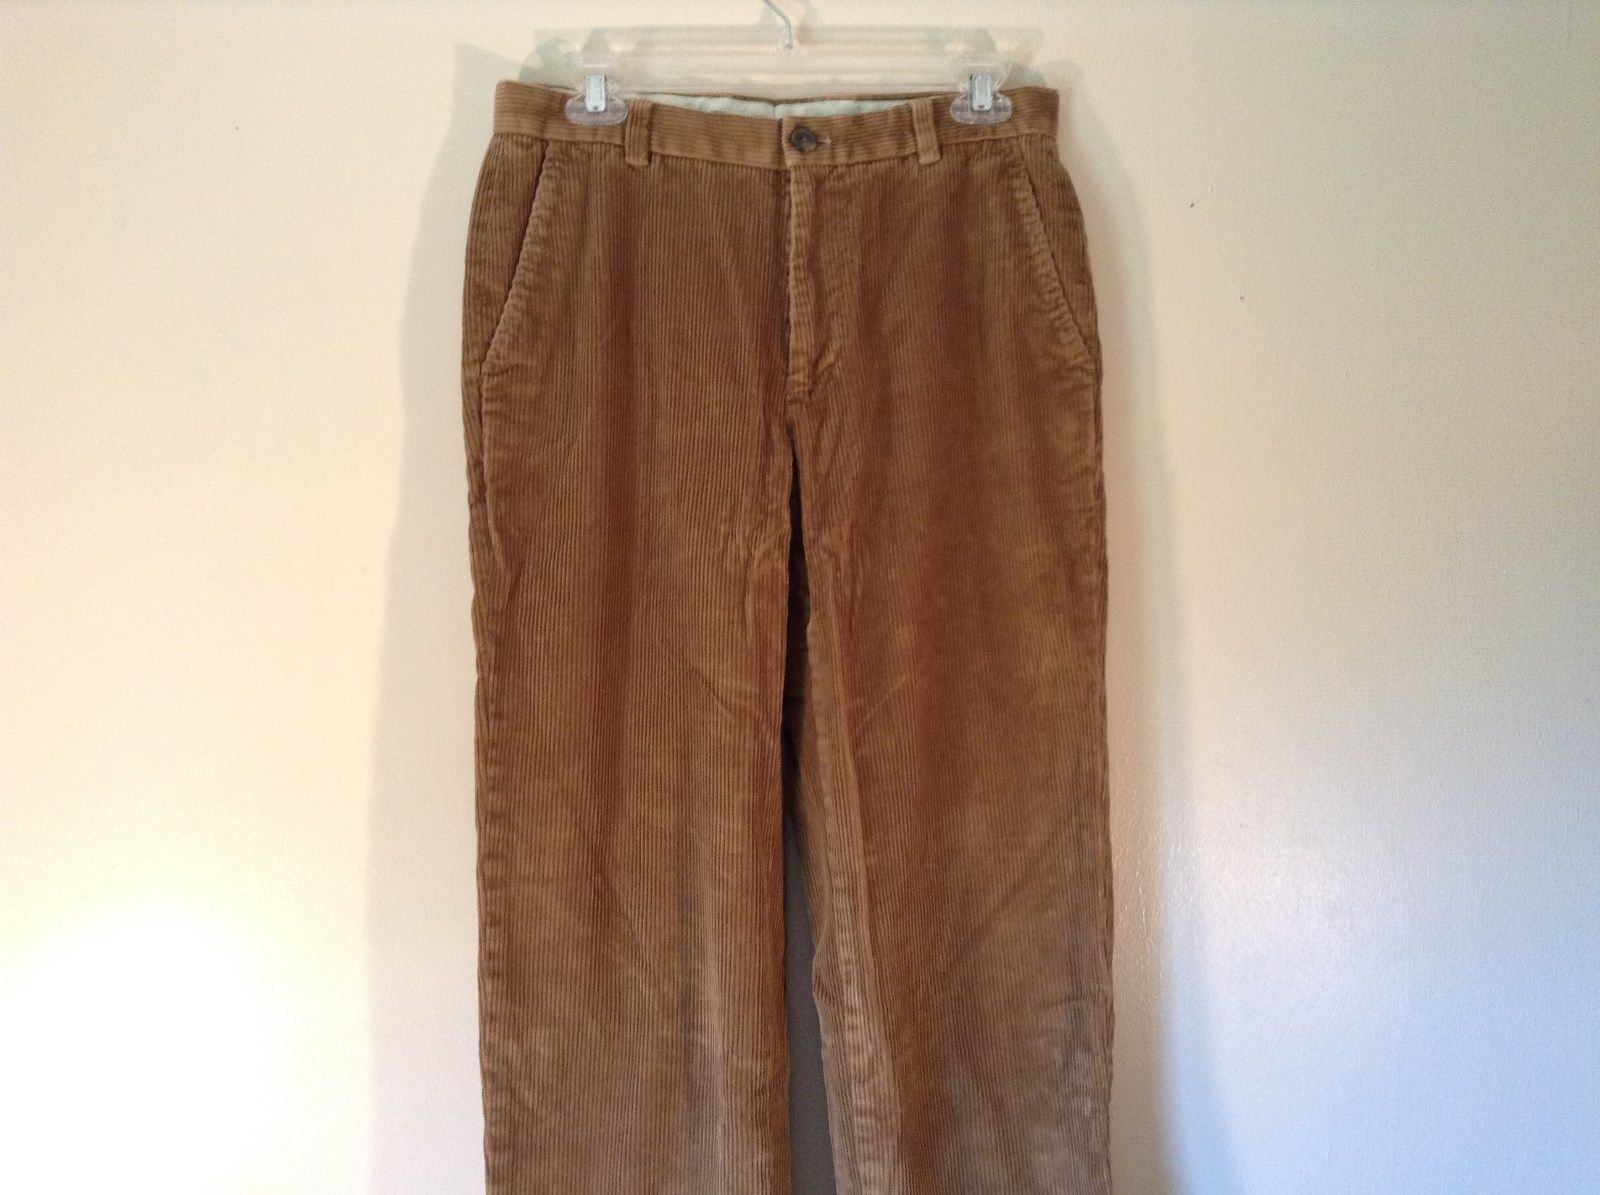 Light Brown Corduroy Pants Size 31 by 30 Brooks Brothers GREAT CONDITION